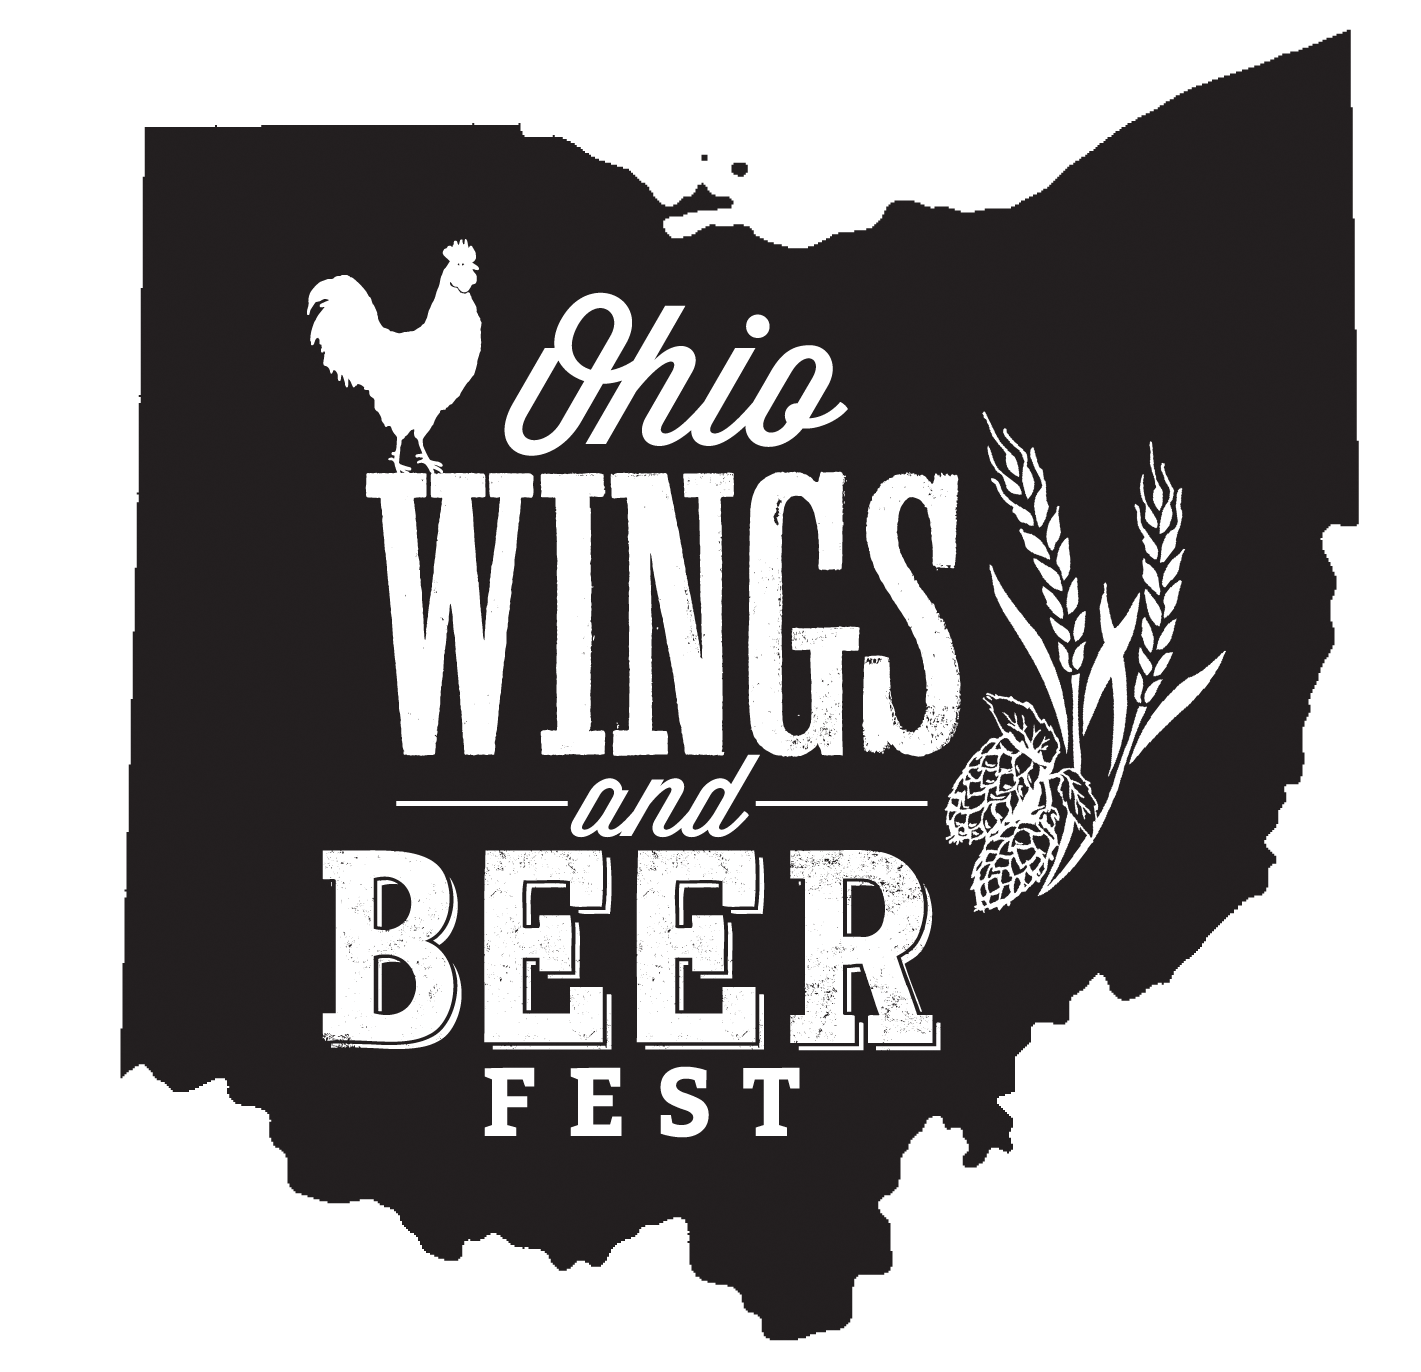 Ohio Wings and Beer Fest